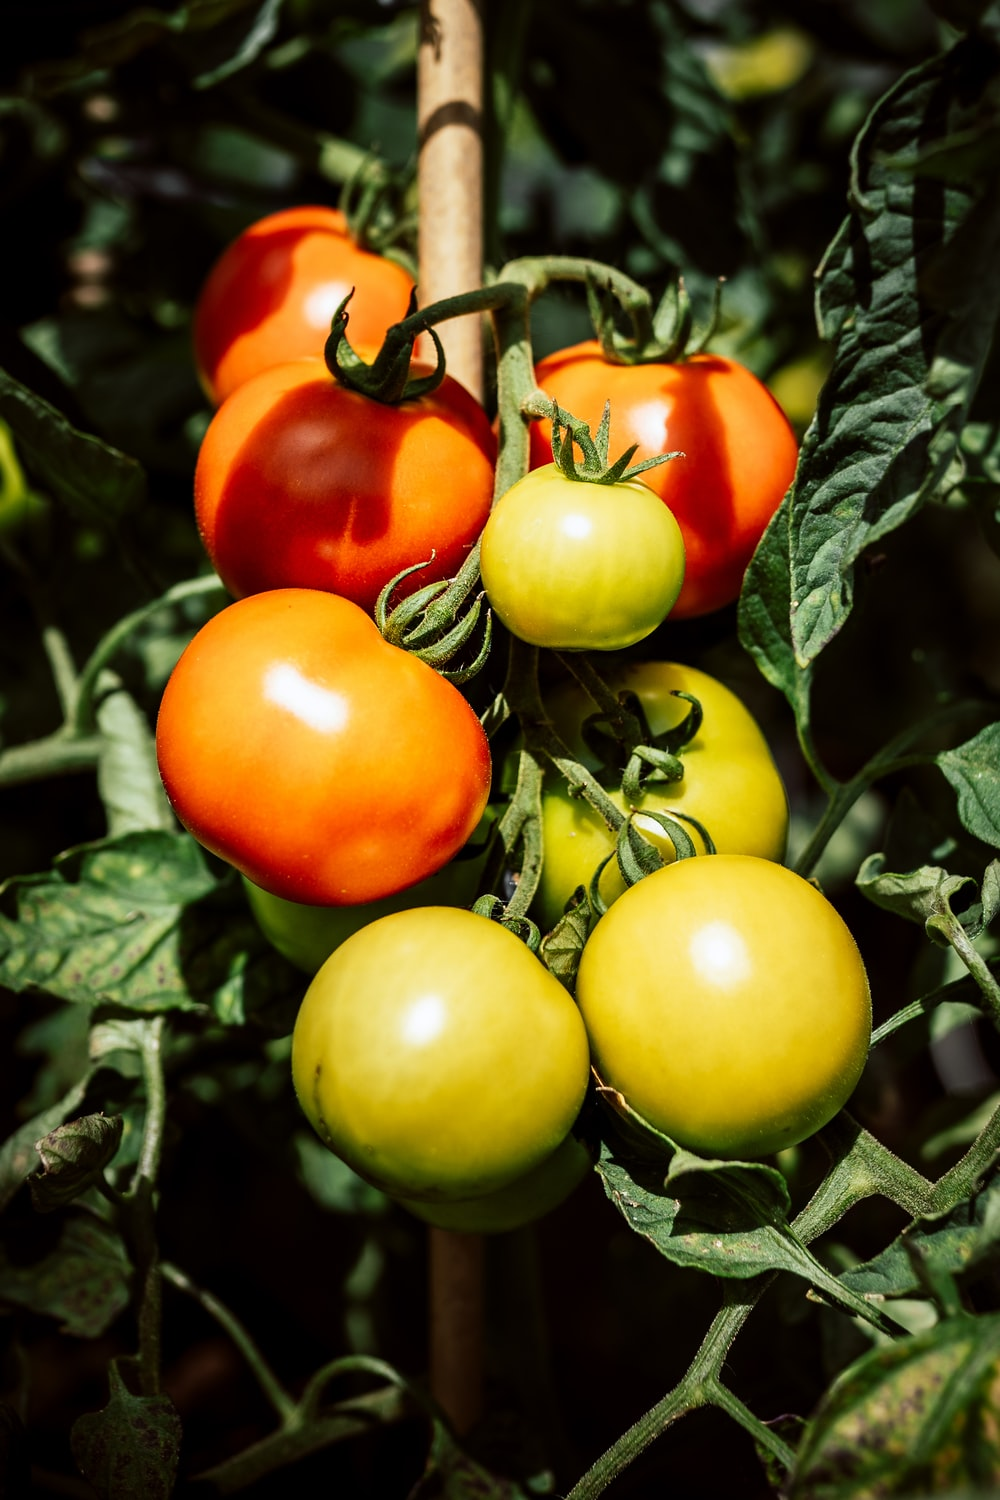 green and red tomatoes on green leaves